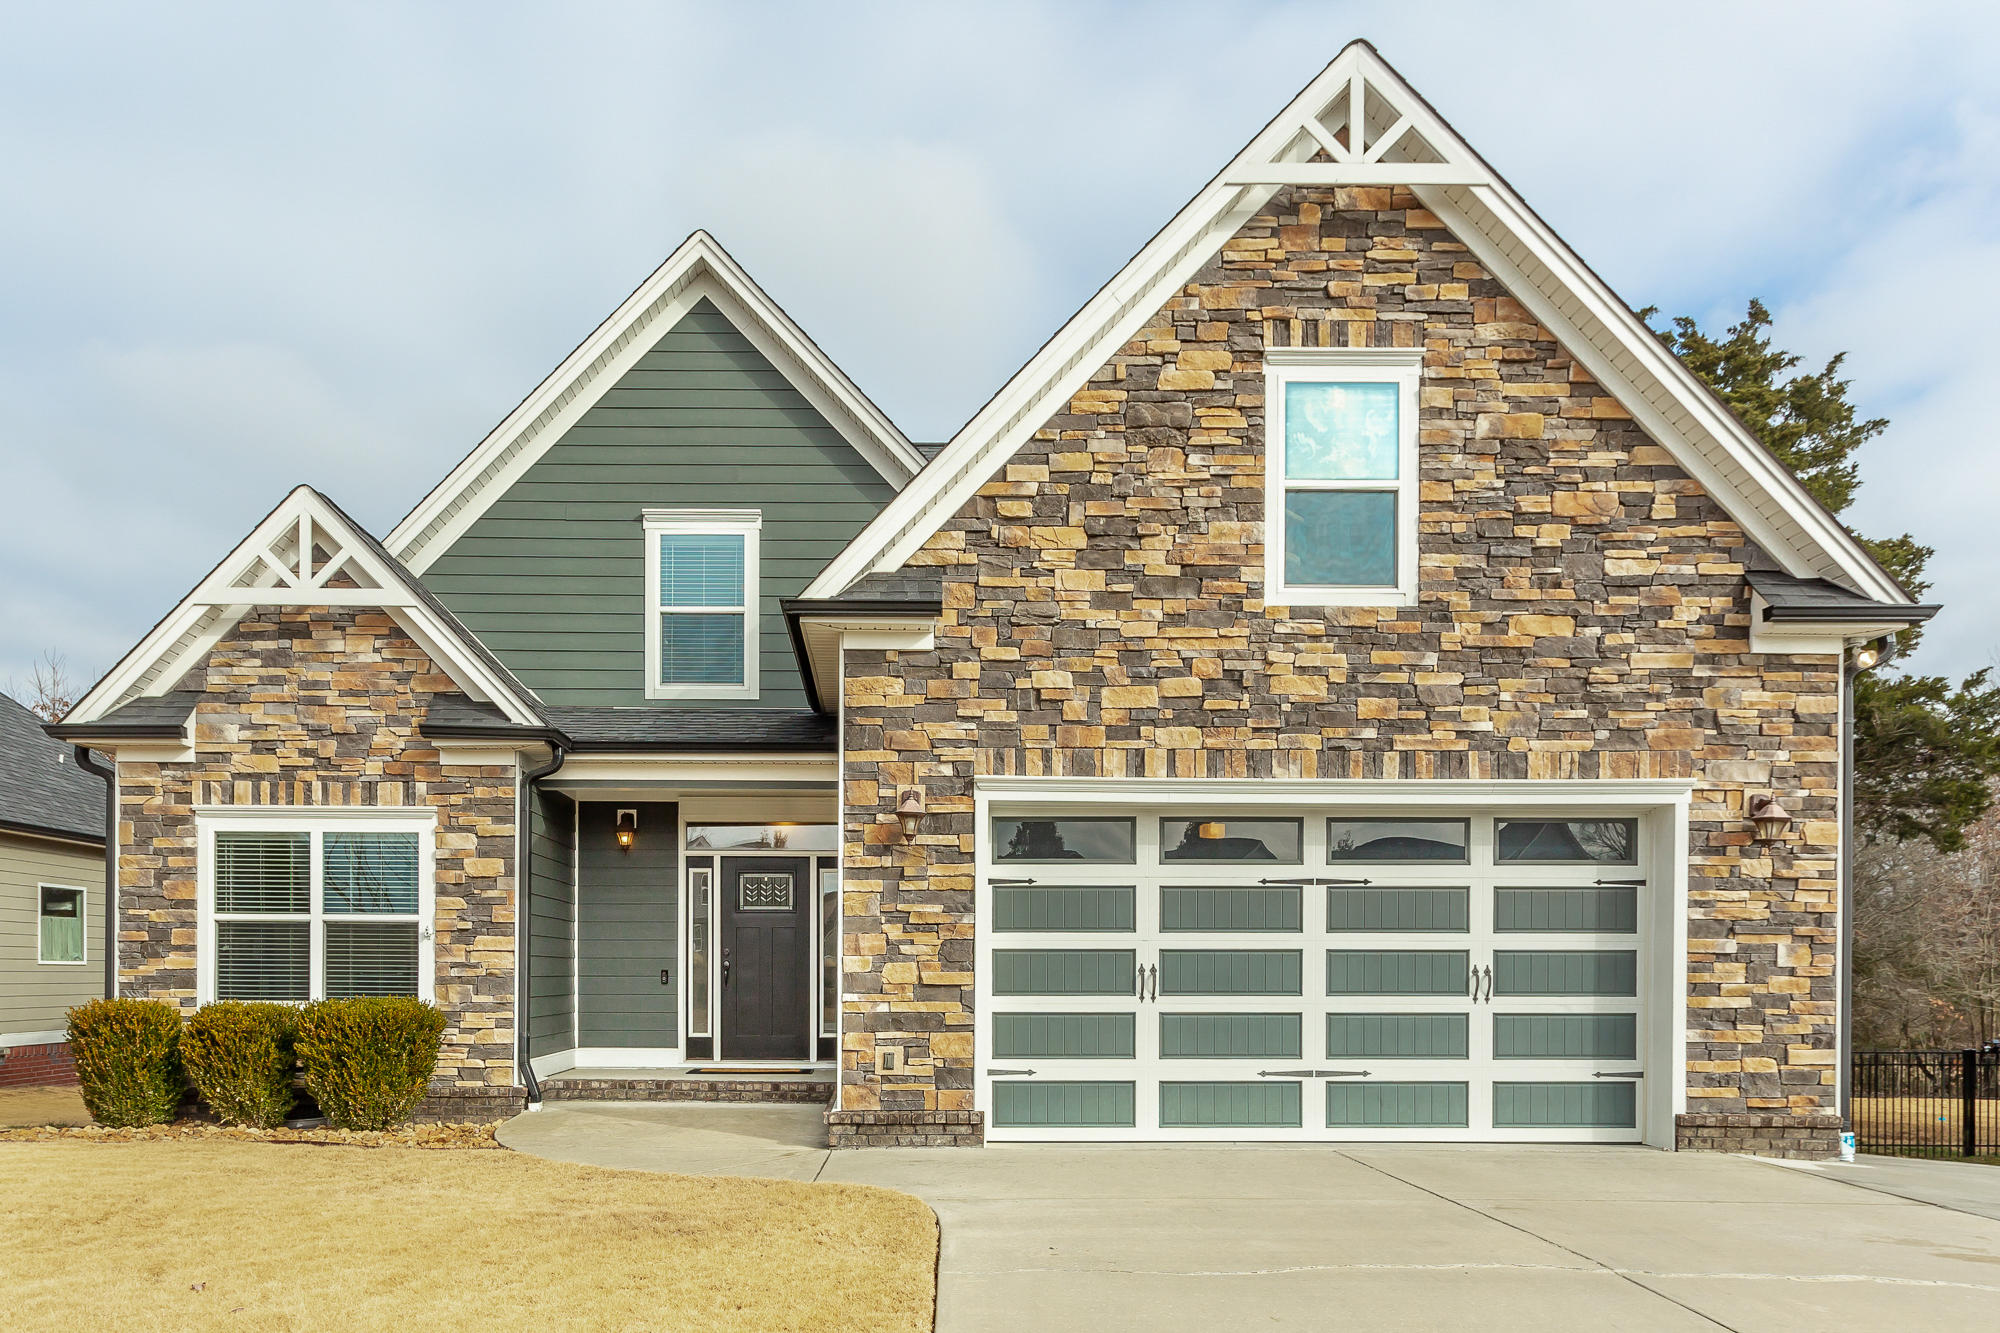 Details for 8591 Skybrook, Ooltewah, TN 37363